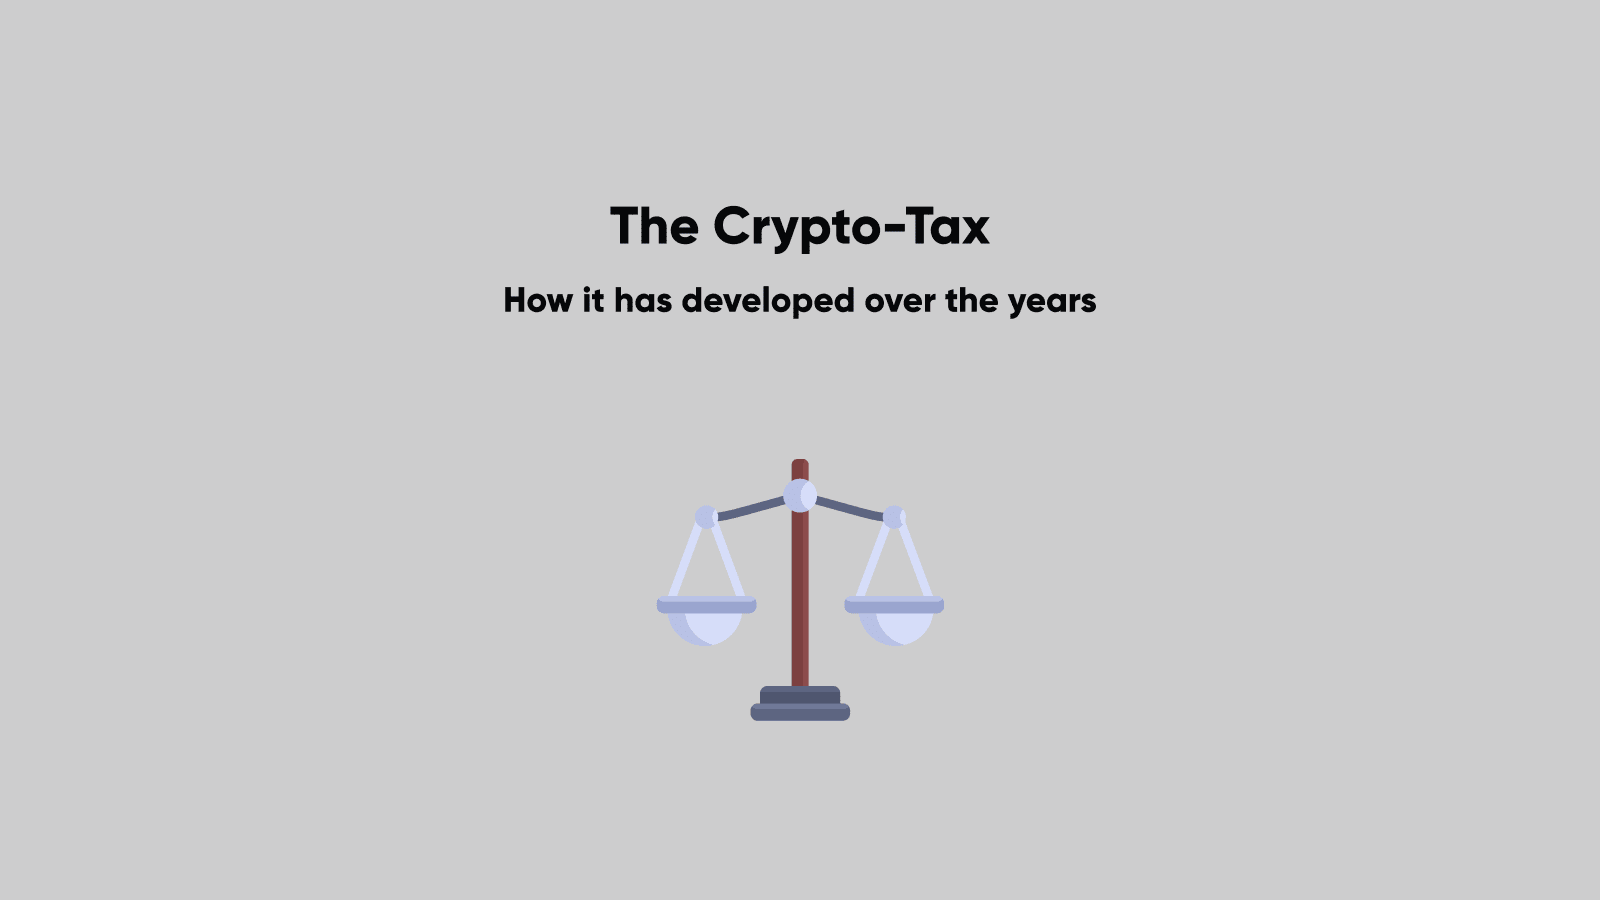 The Development of the Crypto-Tax